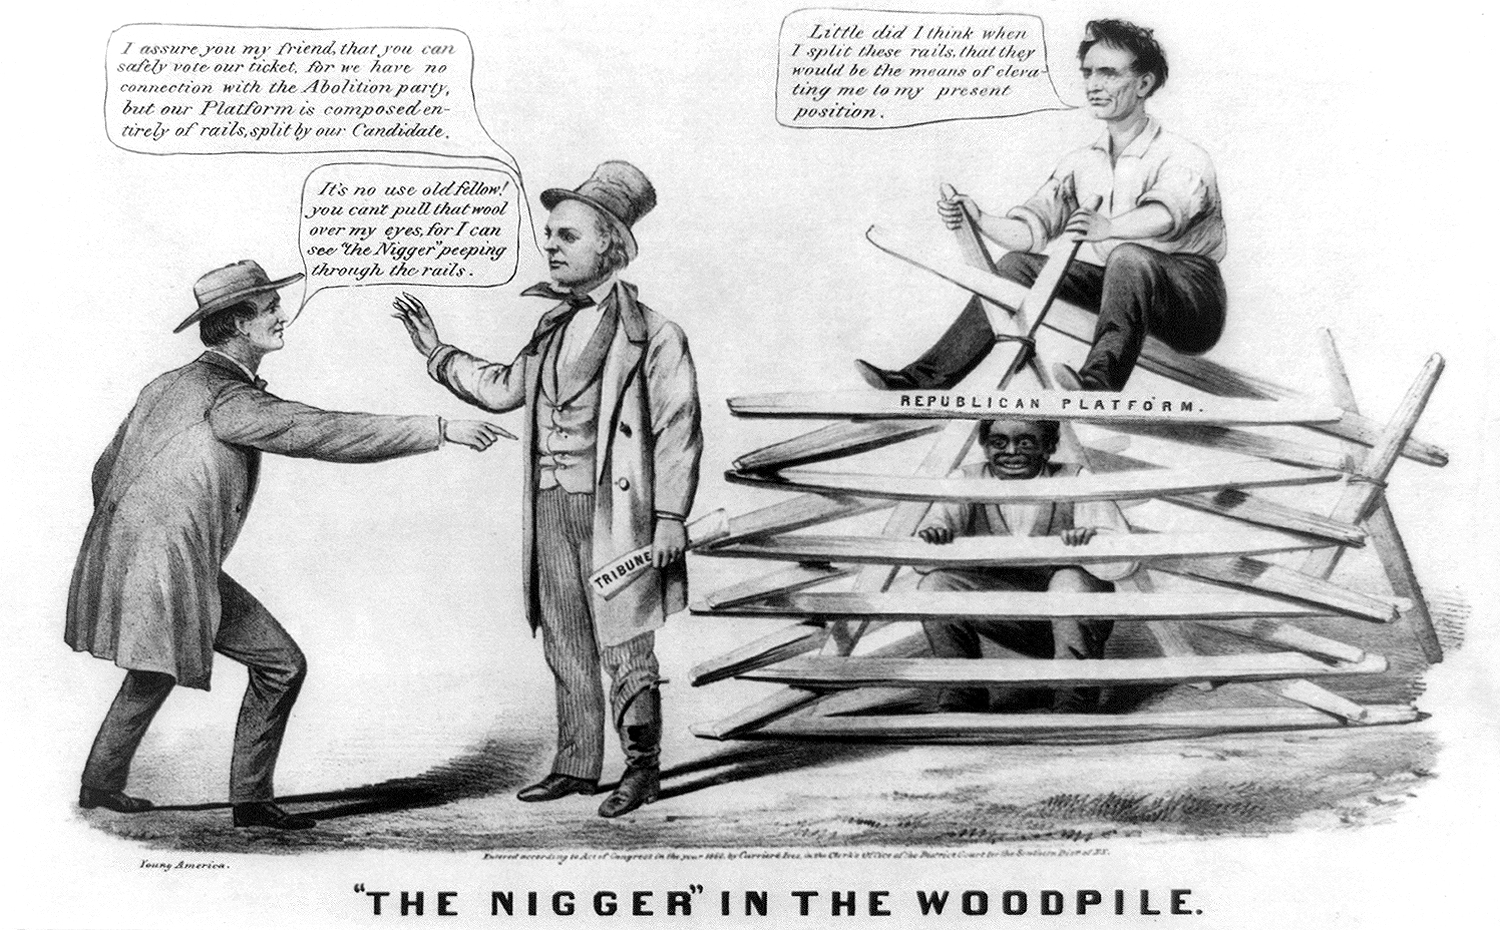 1860 pro-slavery United States cartoon